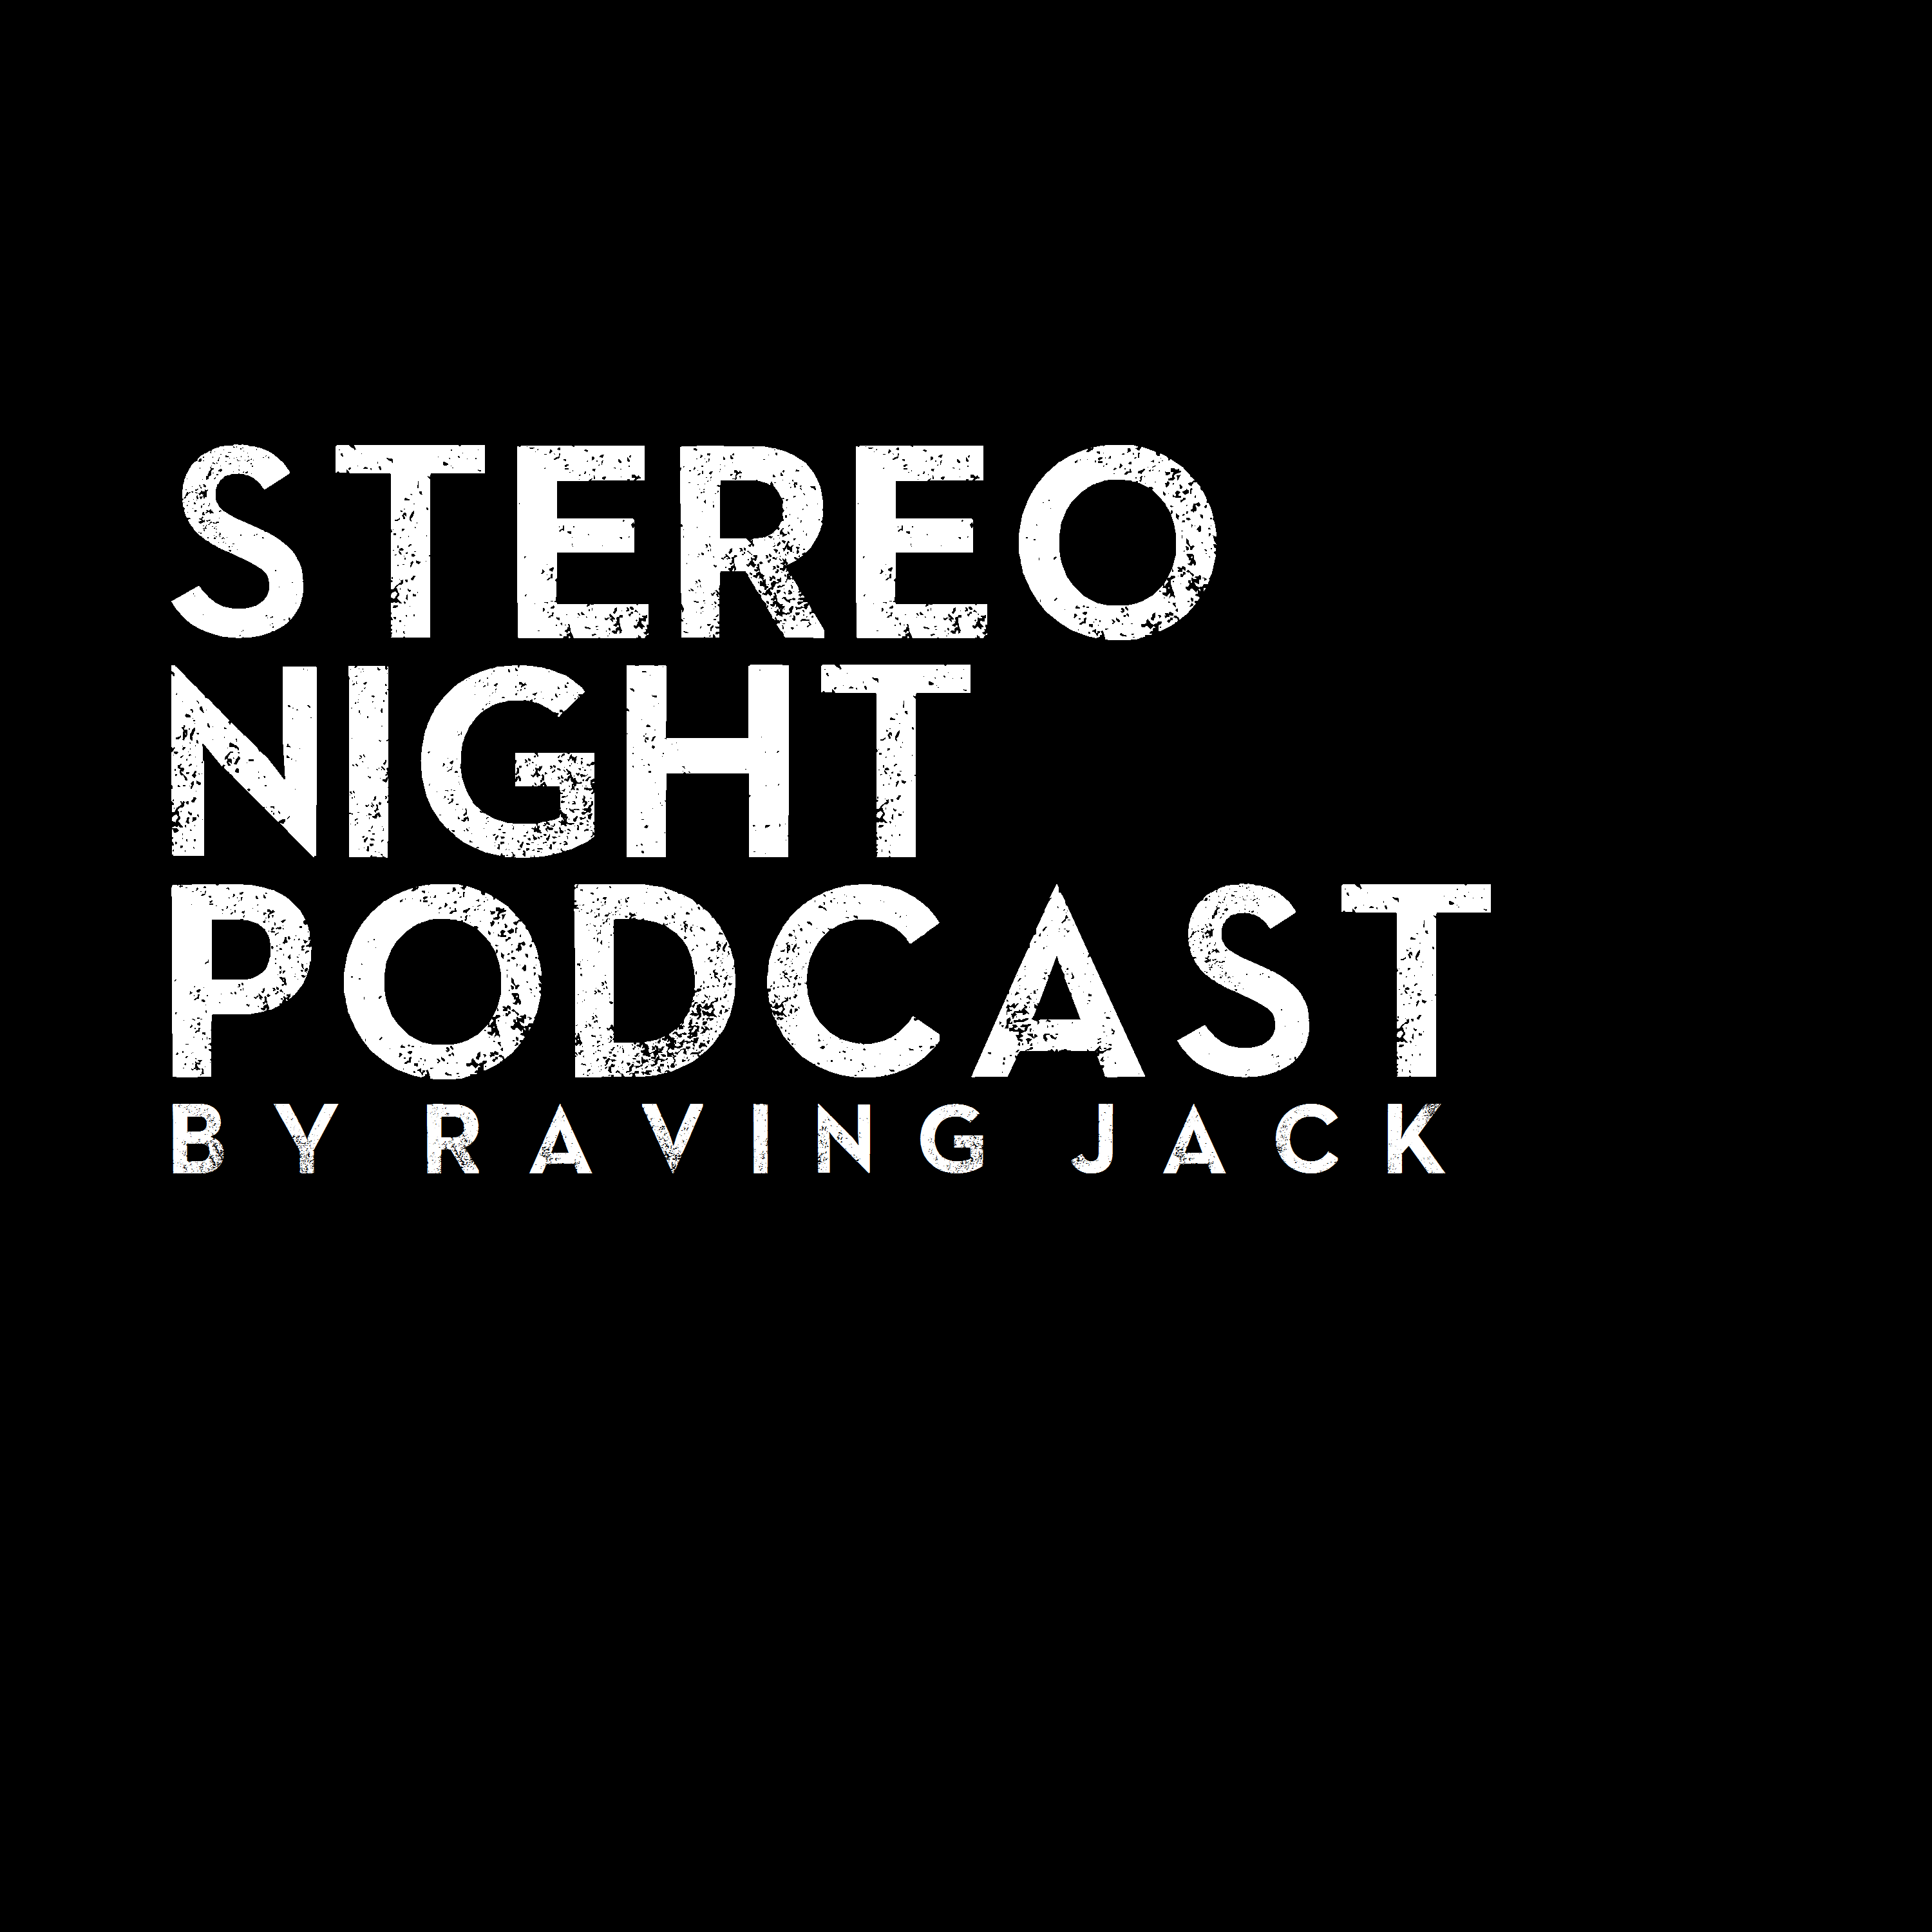 STEREONIGHT PODCAST